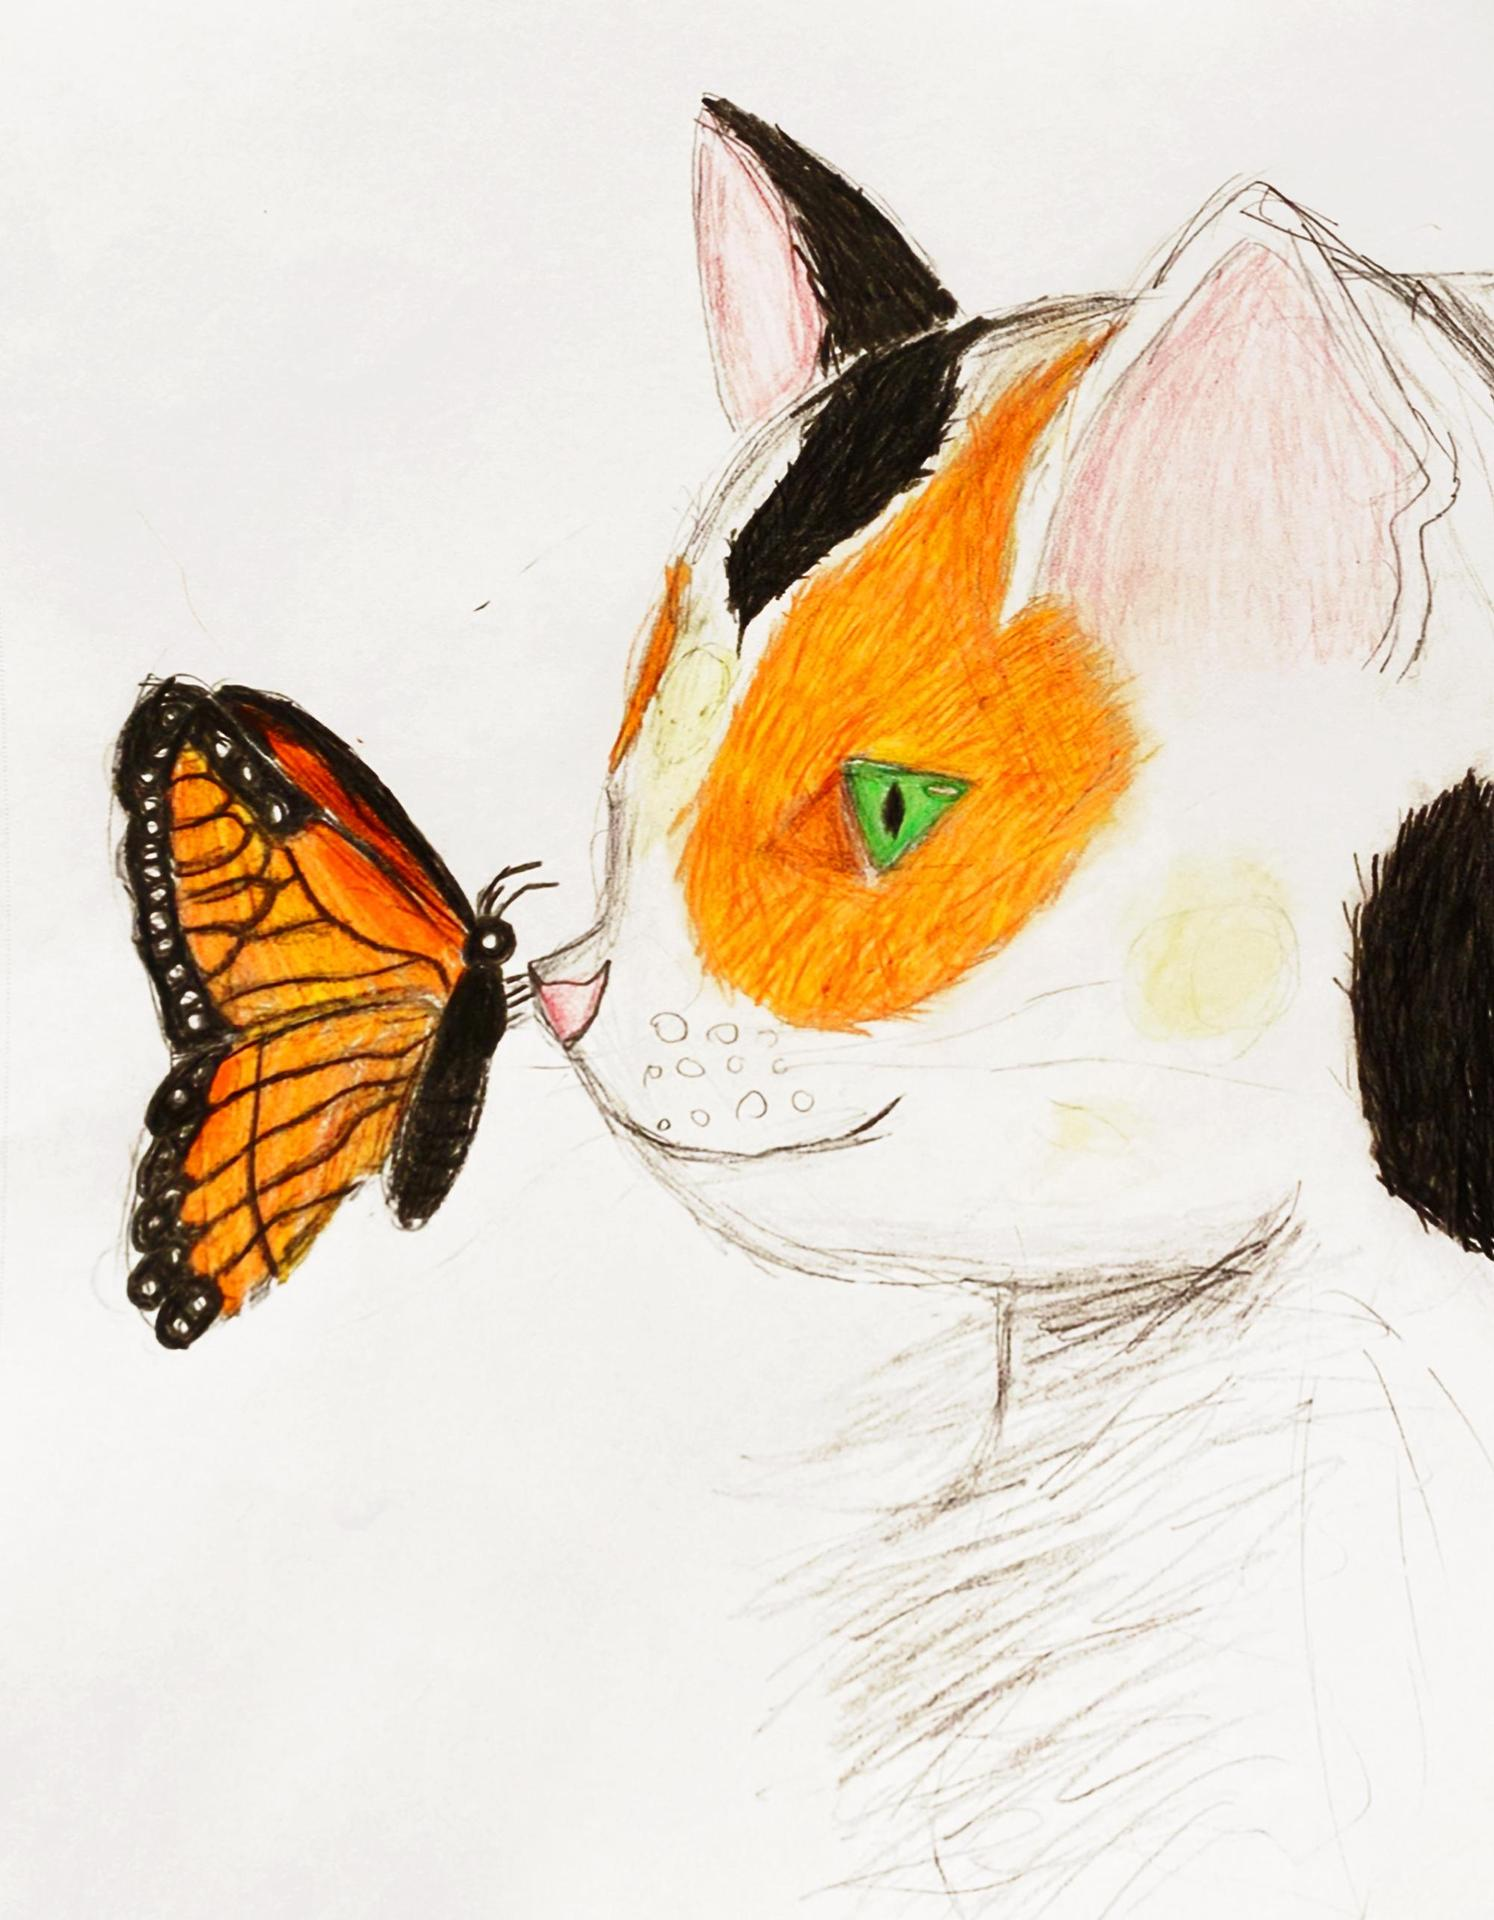 A fifth grader's super detailed drawing of a butterfly on a cat's nose